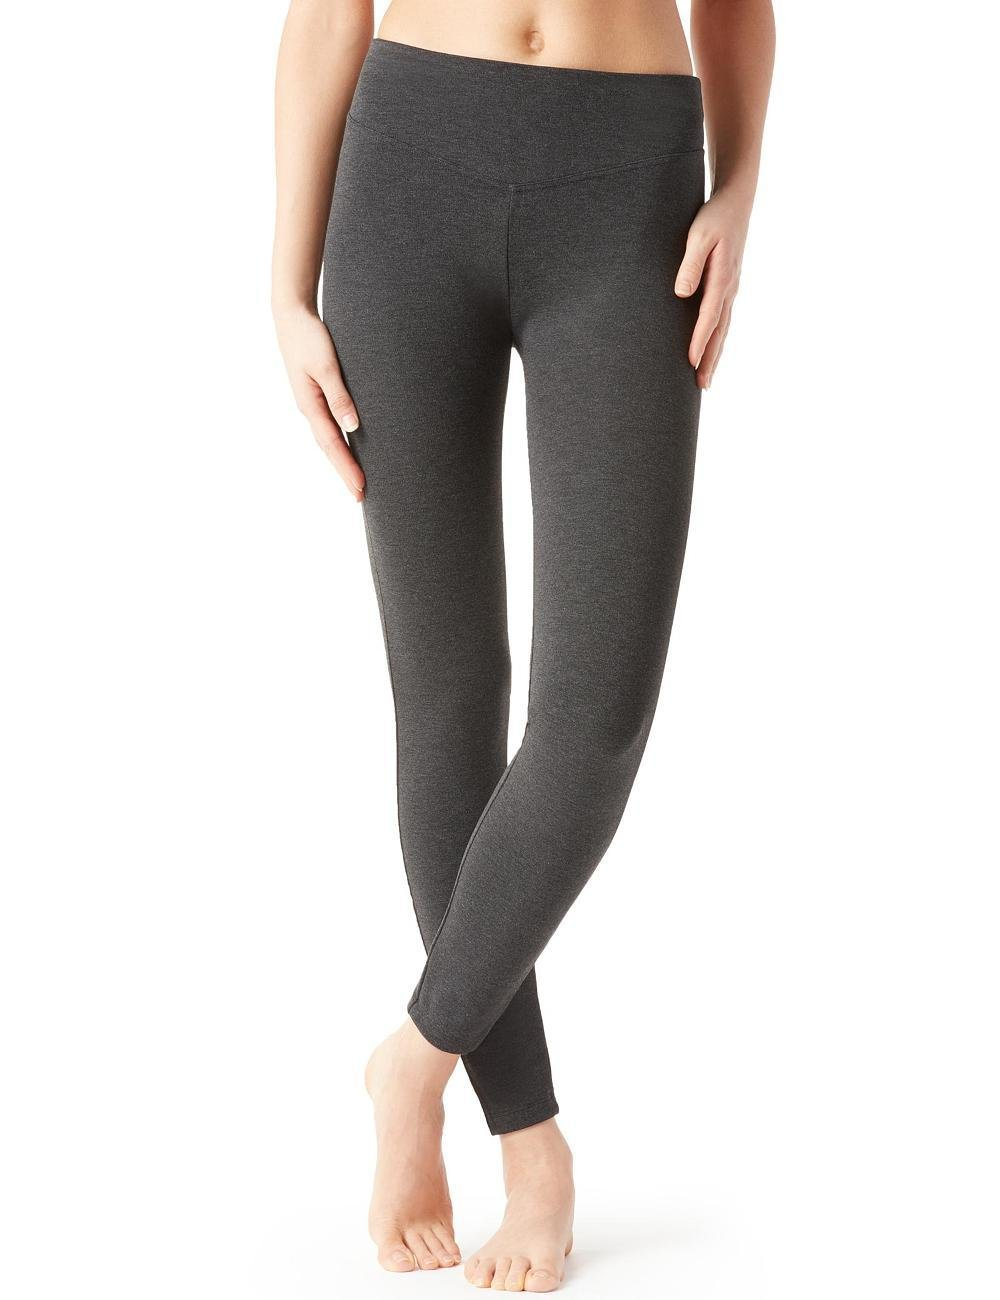 Calzedonia Womens Total Shaper Leggings